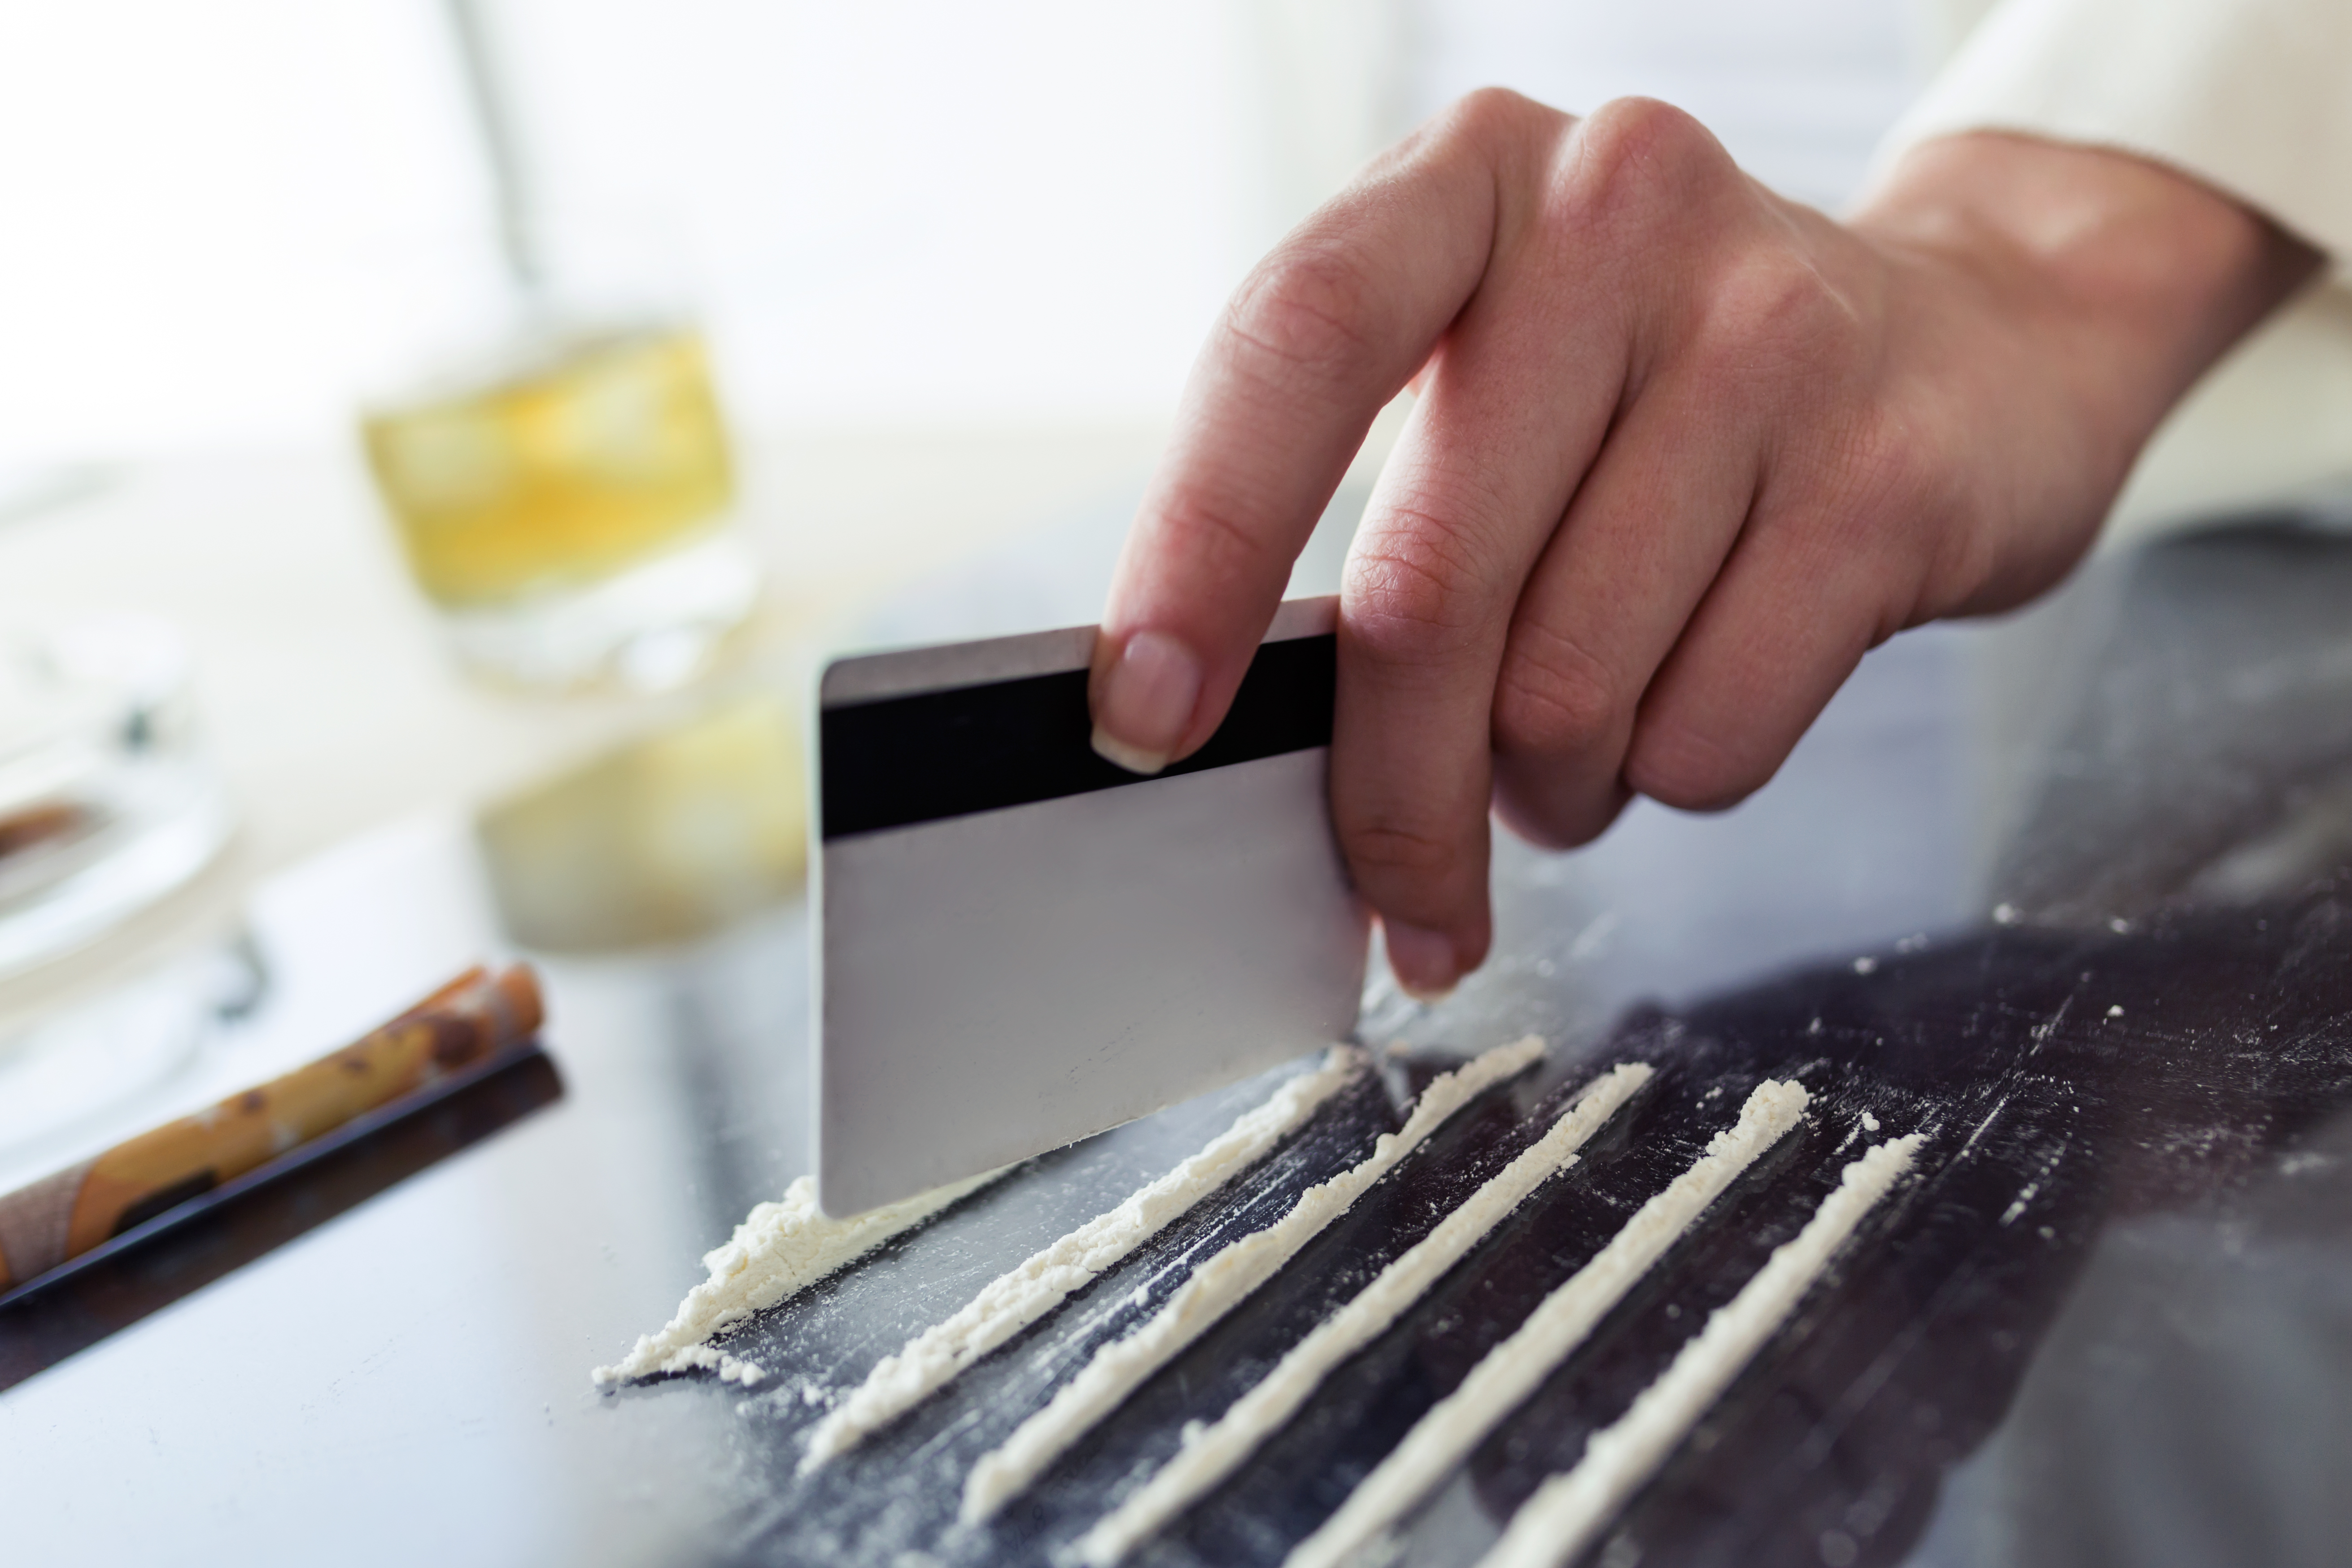 There are fears that cocaine is now the drug of choice once again for younger people.